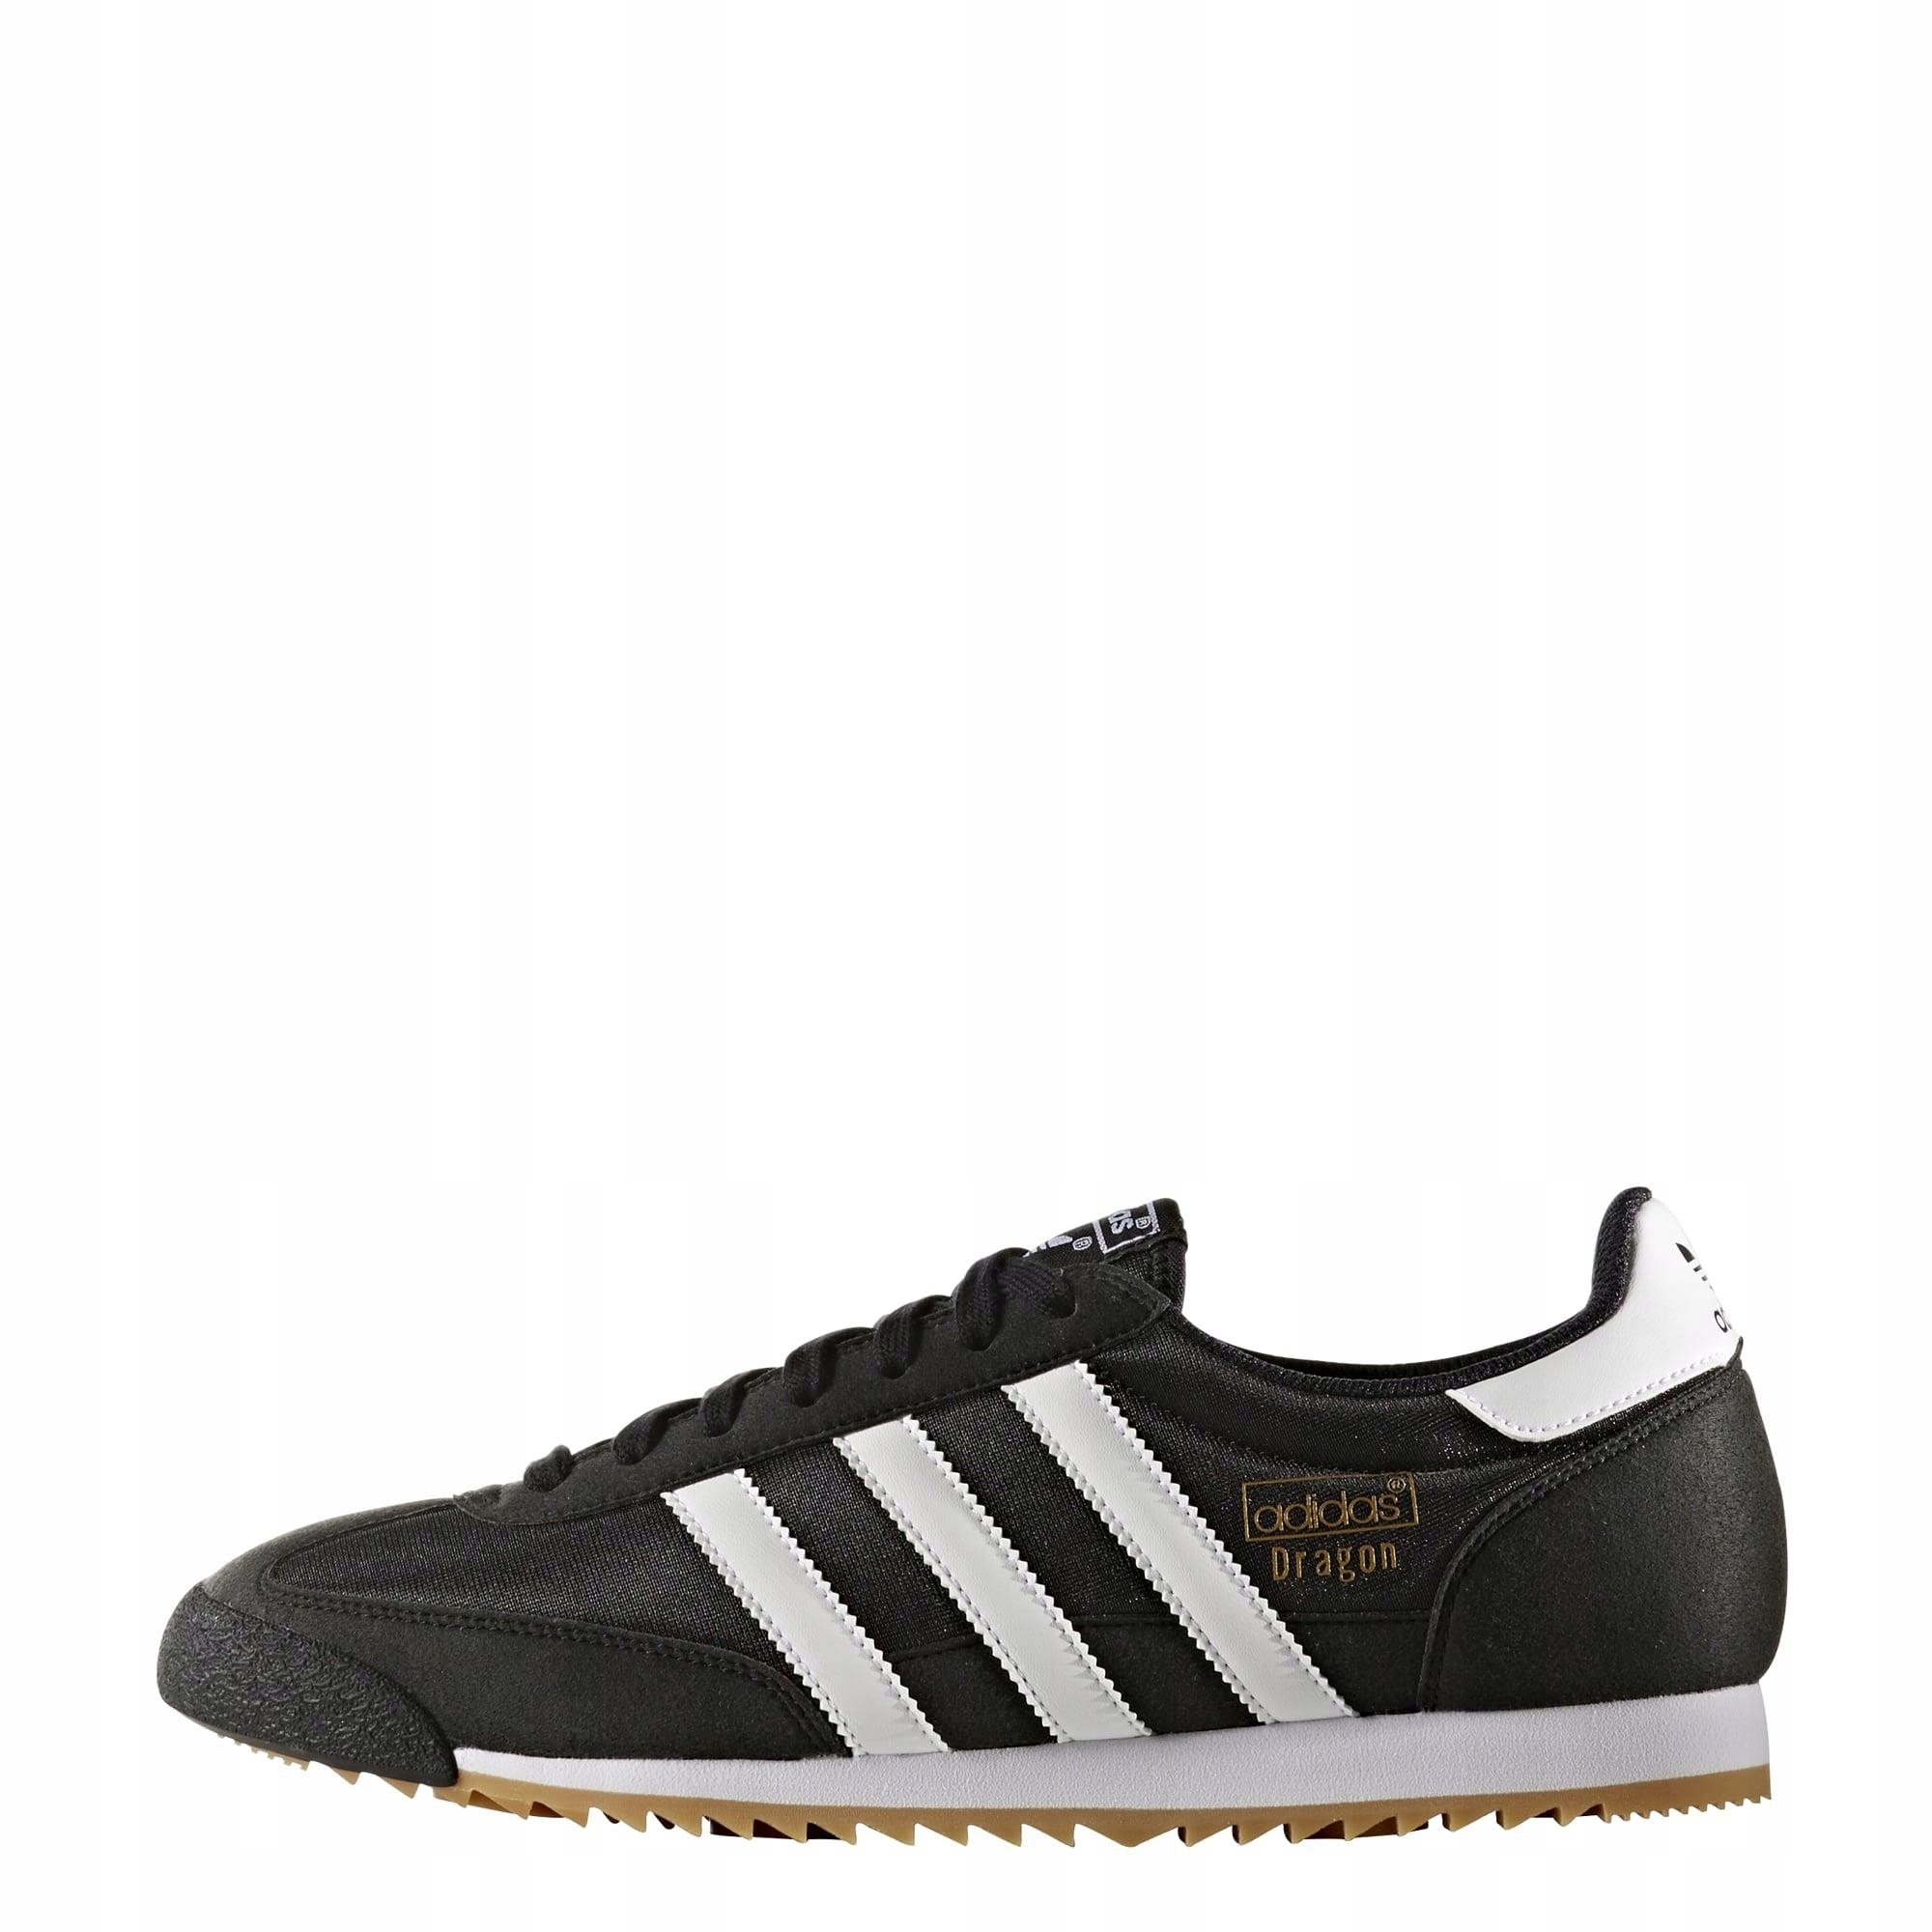 low priced 00919 43692 BUTY ADIDAS DRAGON OG SHOES BB1266 r 46 (7483220262)